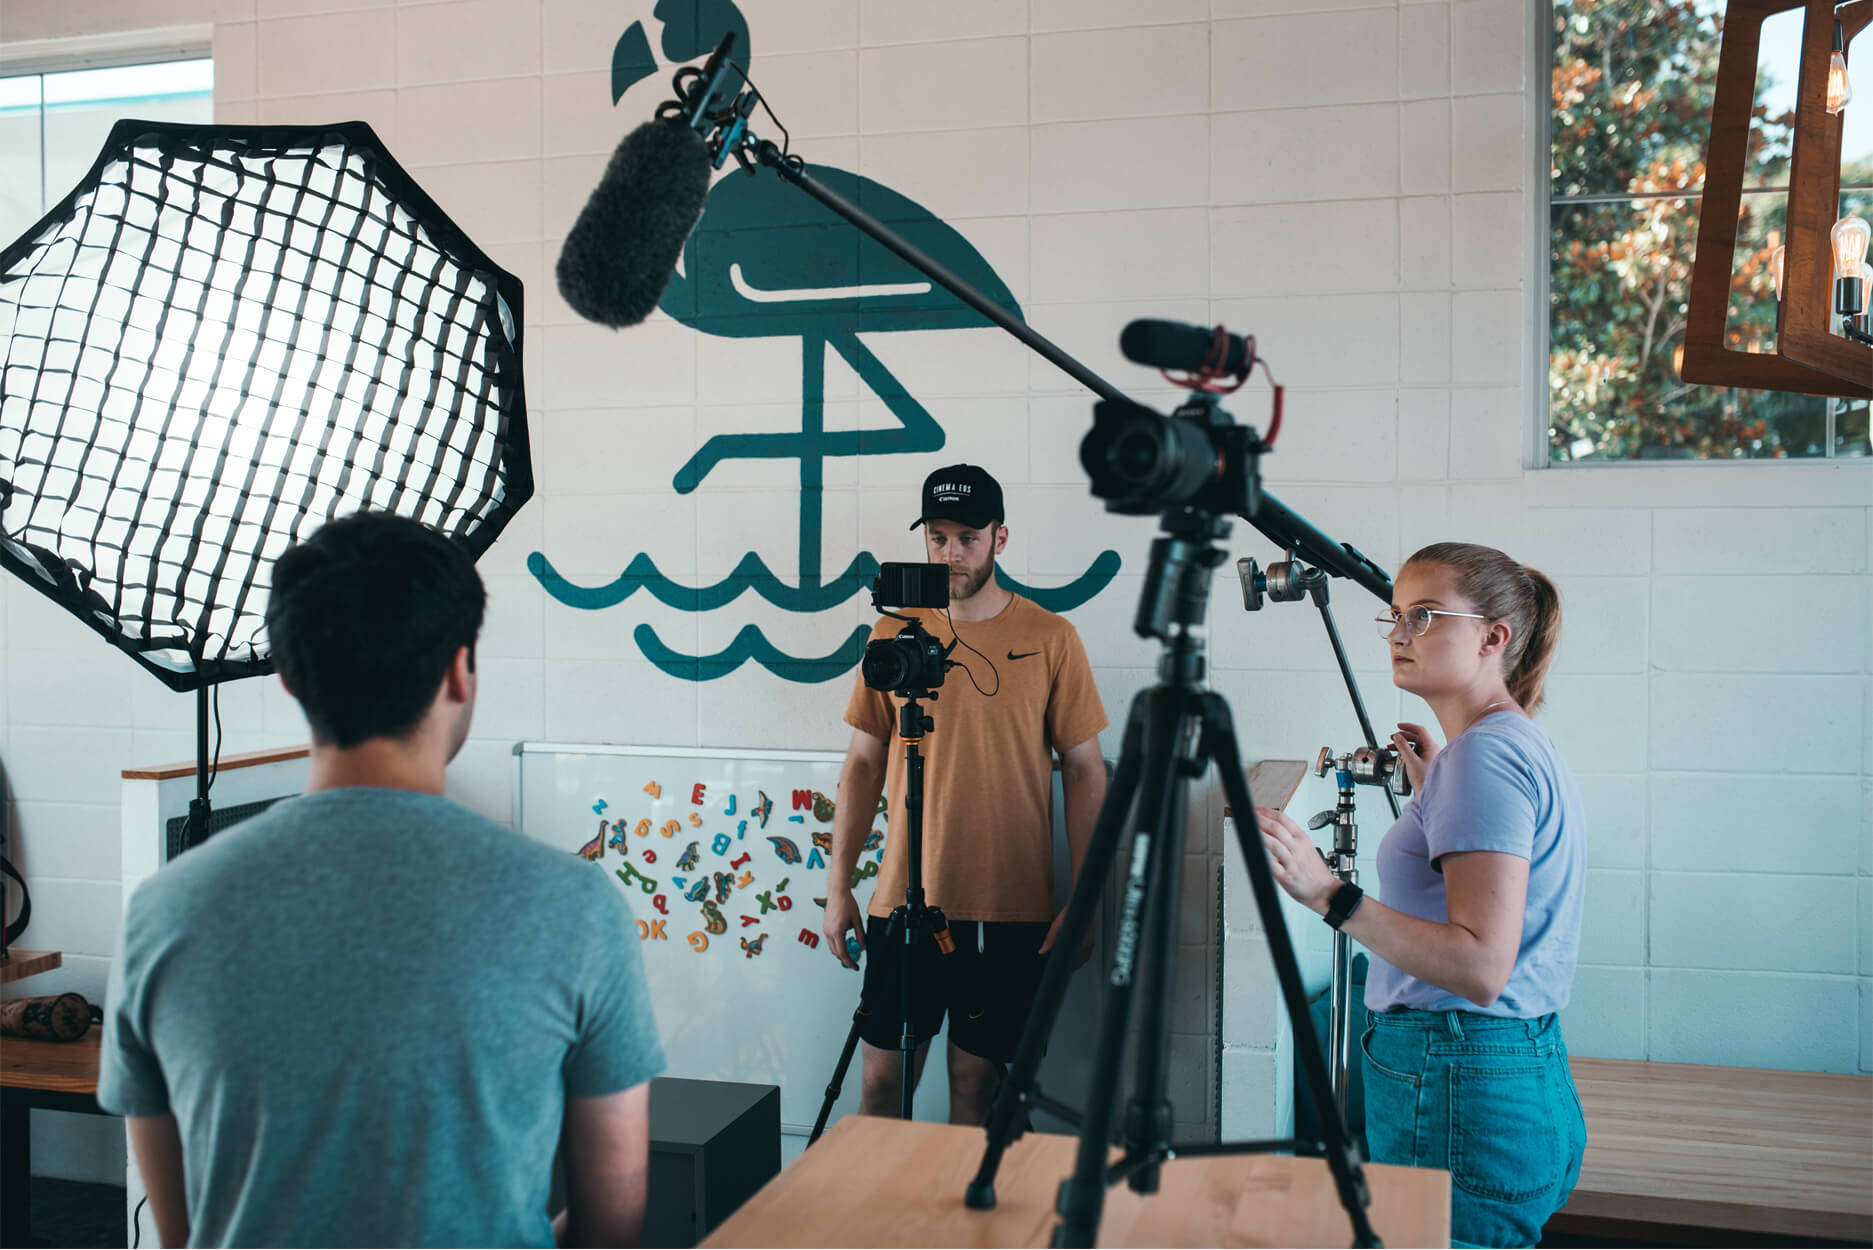 How to Maintain Brand Identity on Film